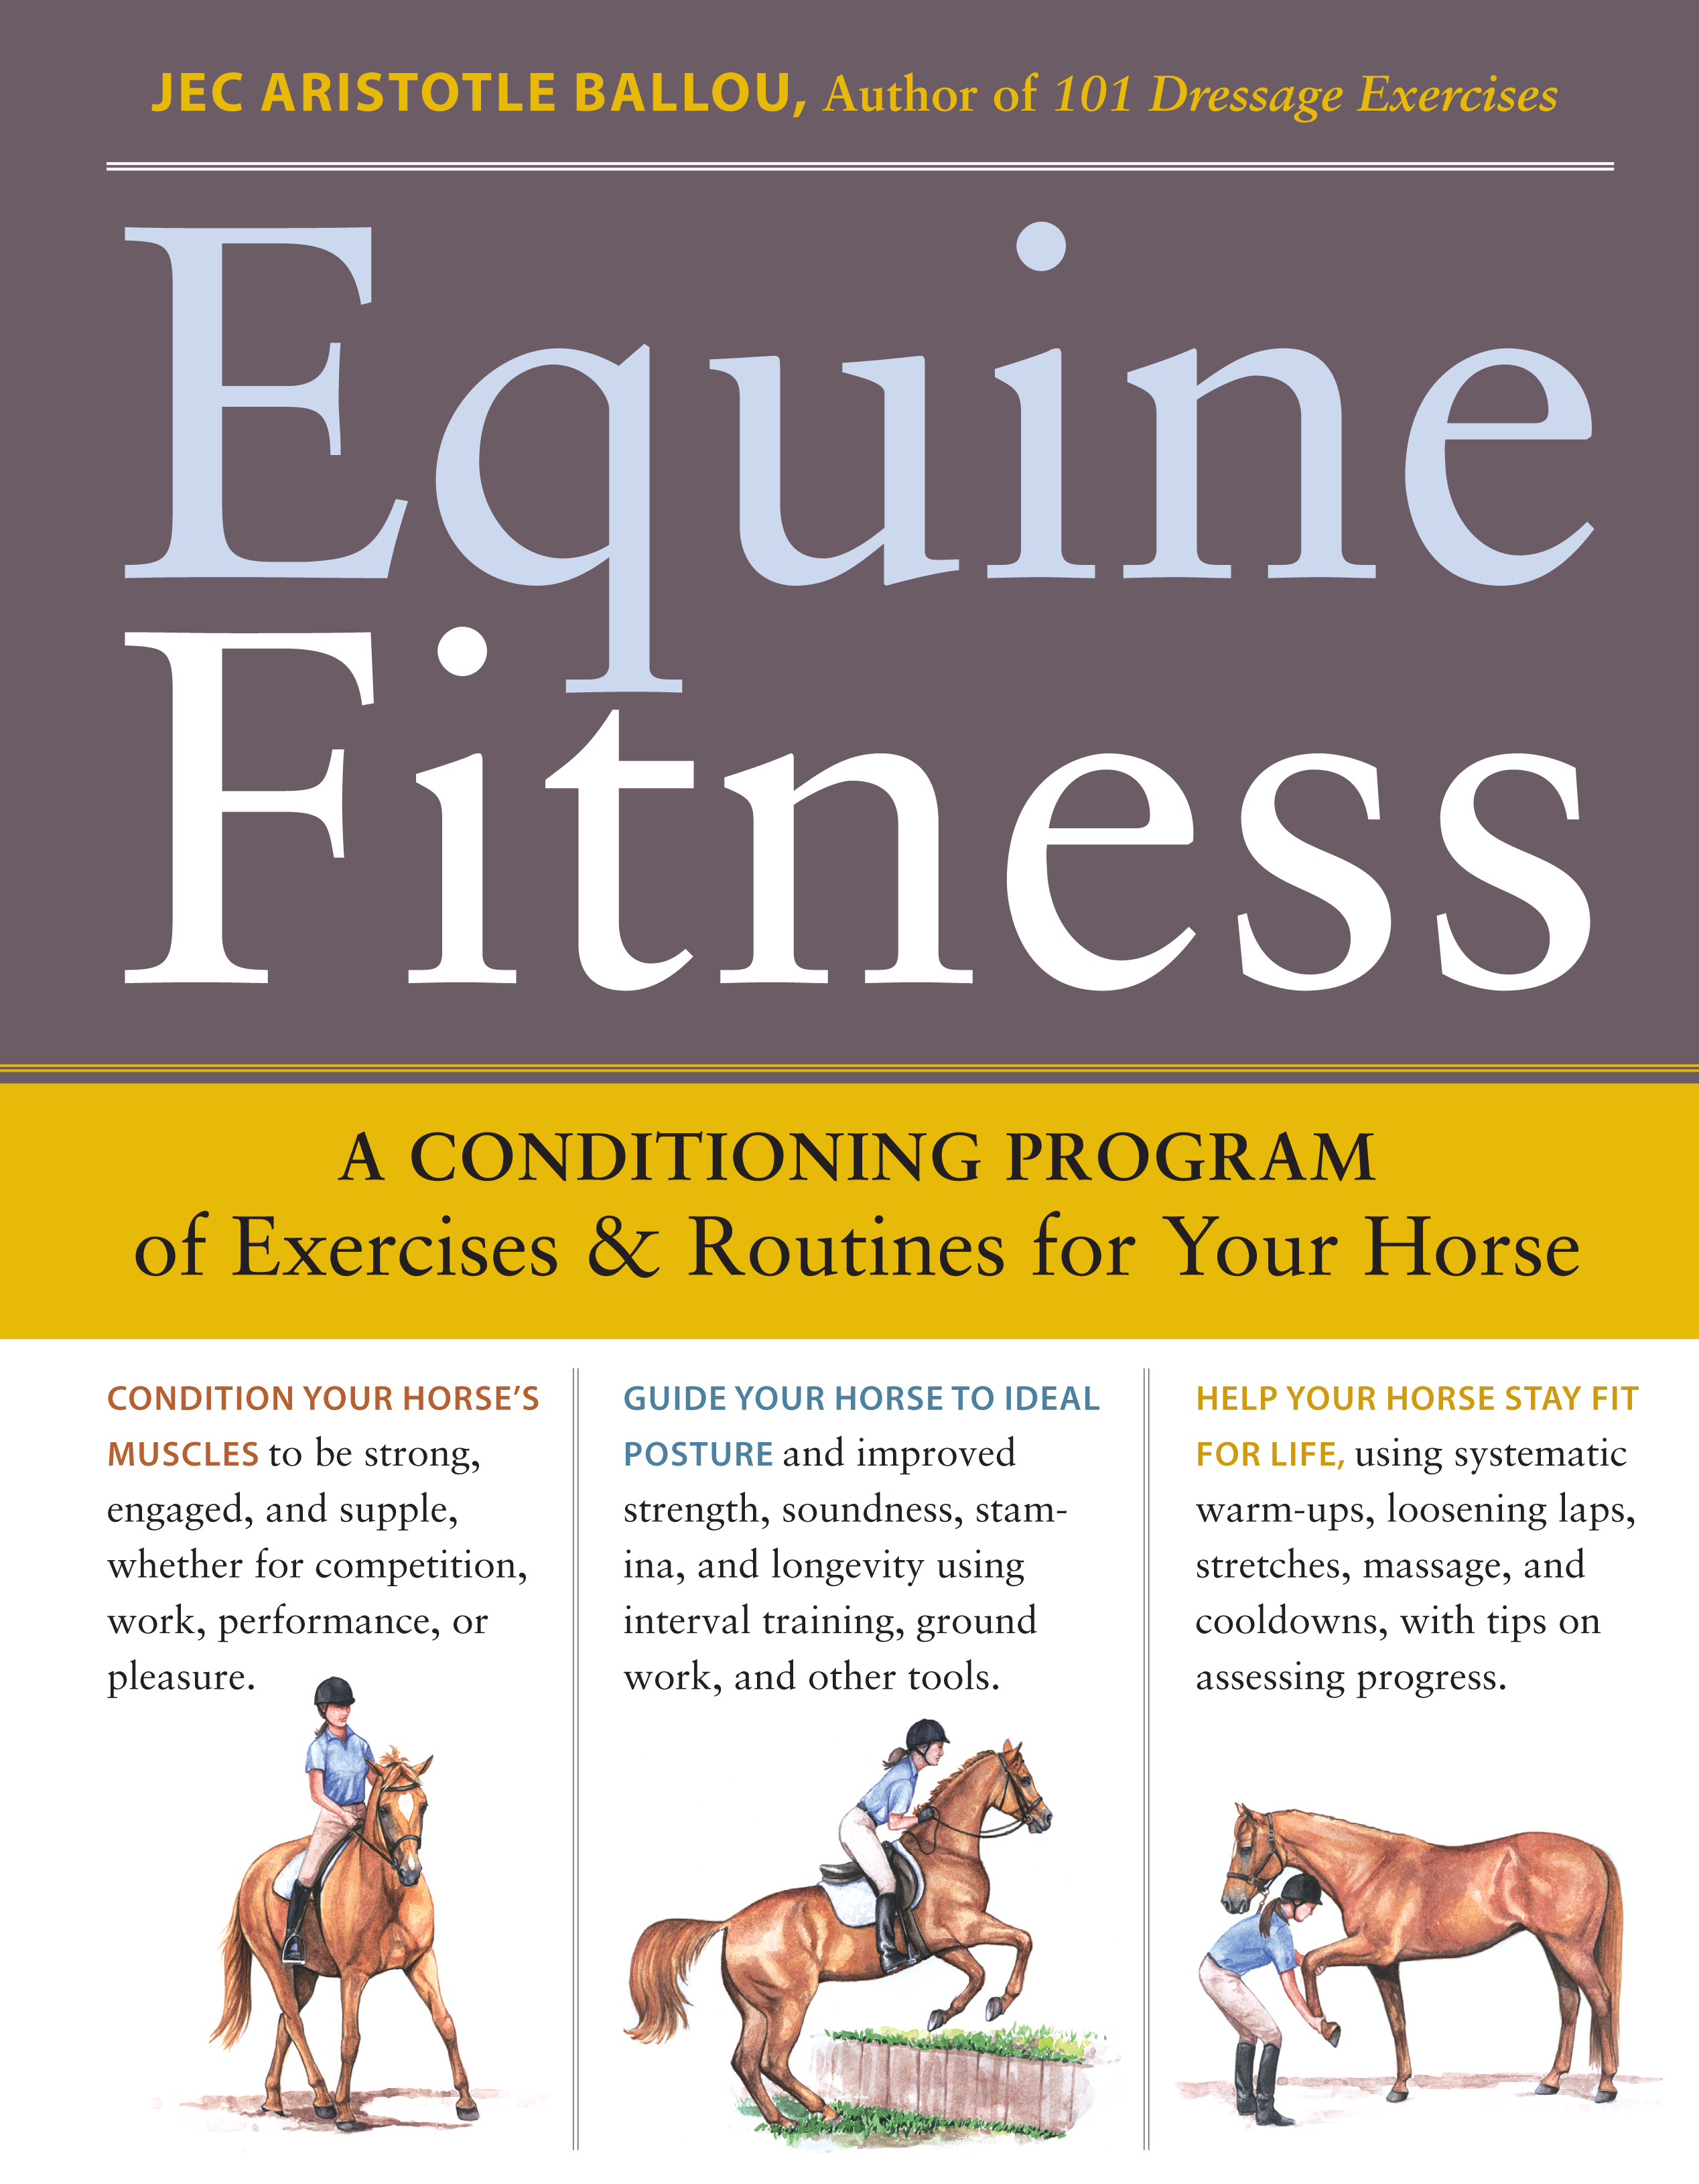 Equine Fitness A Program of Exercises and Routines for Your Horse  - Jec Aristotle Ballou